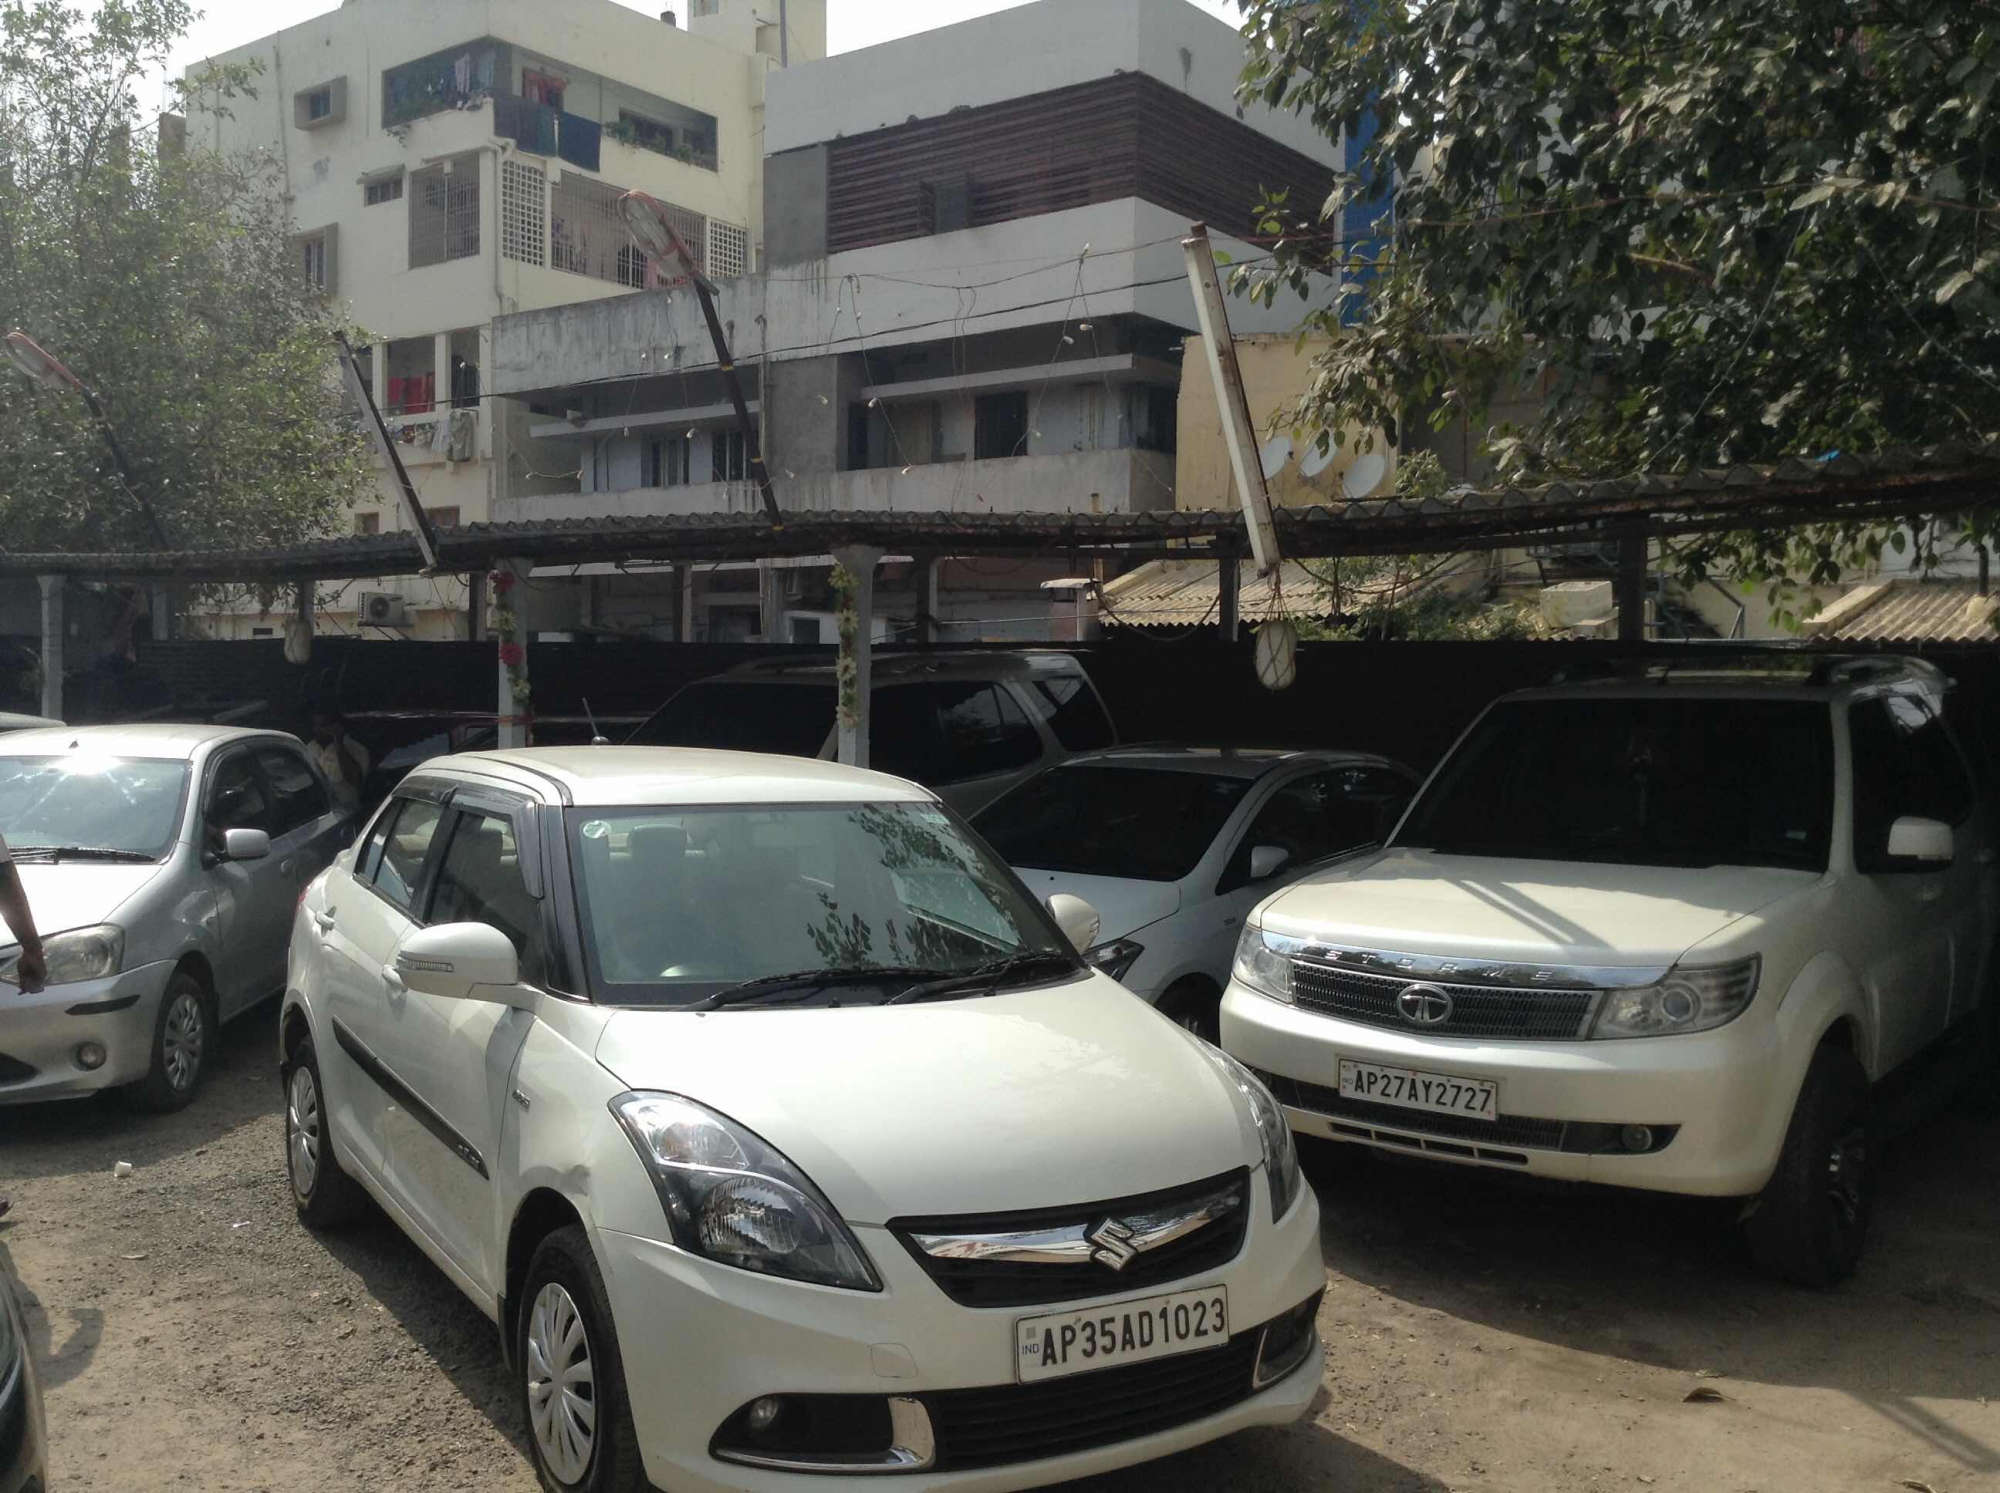 Looking Car for Sale Second Hand Awesome Car Worald Moghalraja Puram Second Hand Car Dealers In Vijayawada